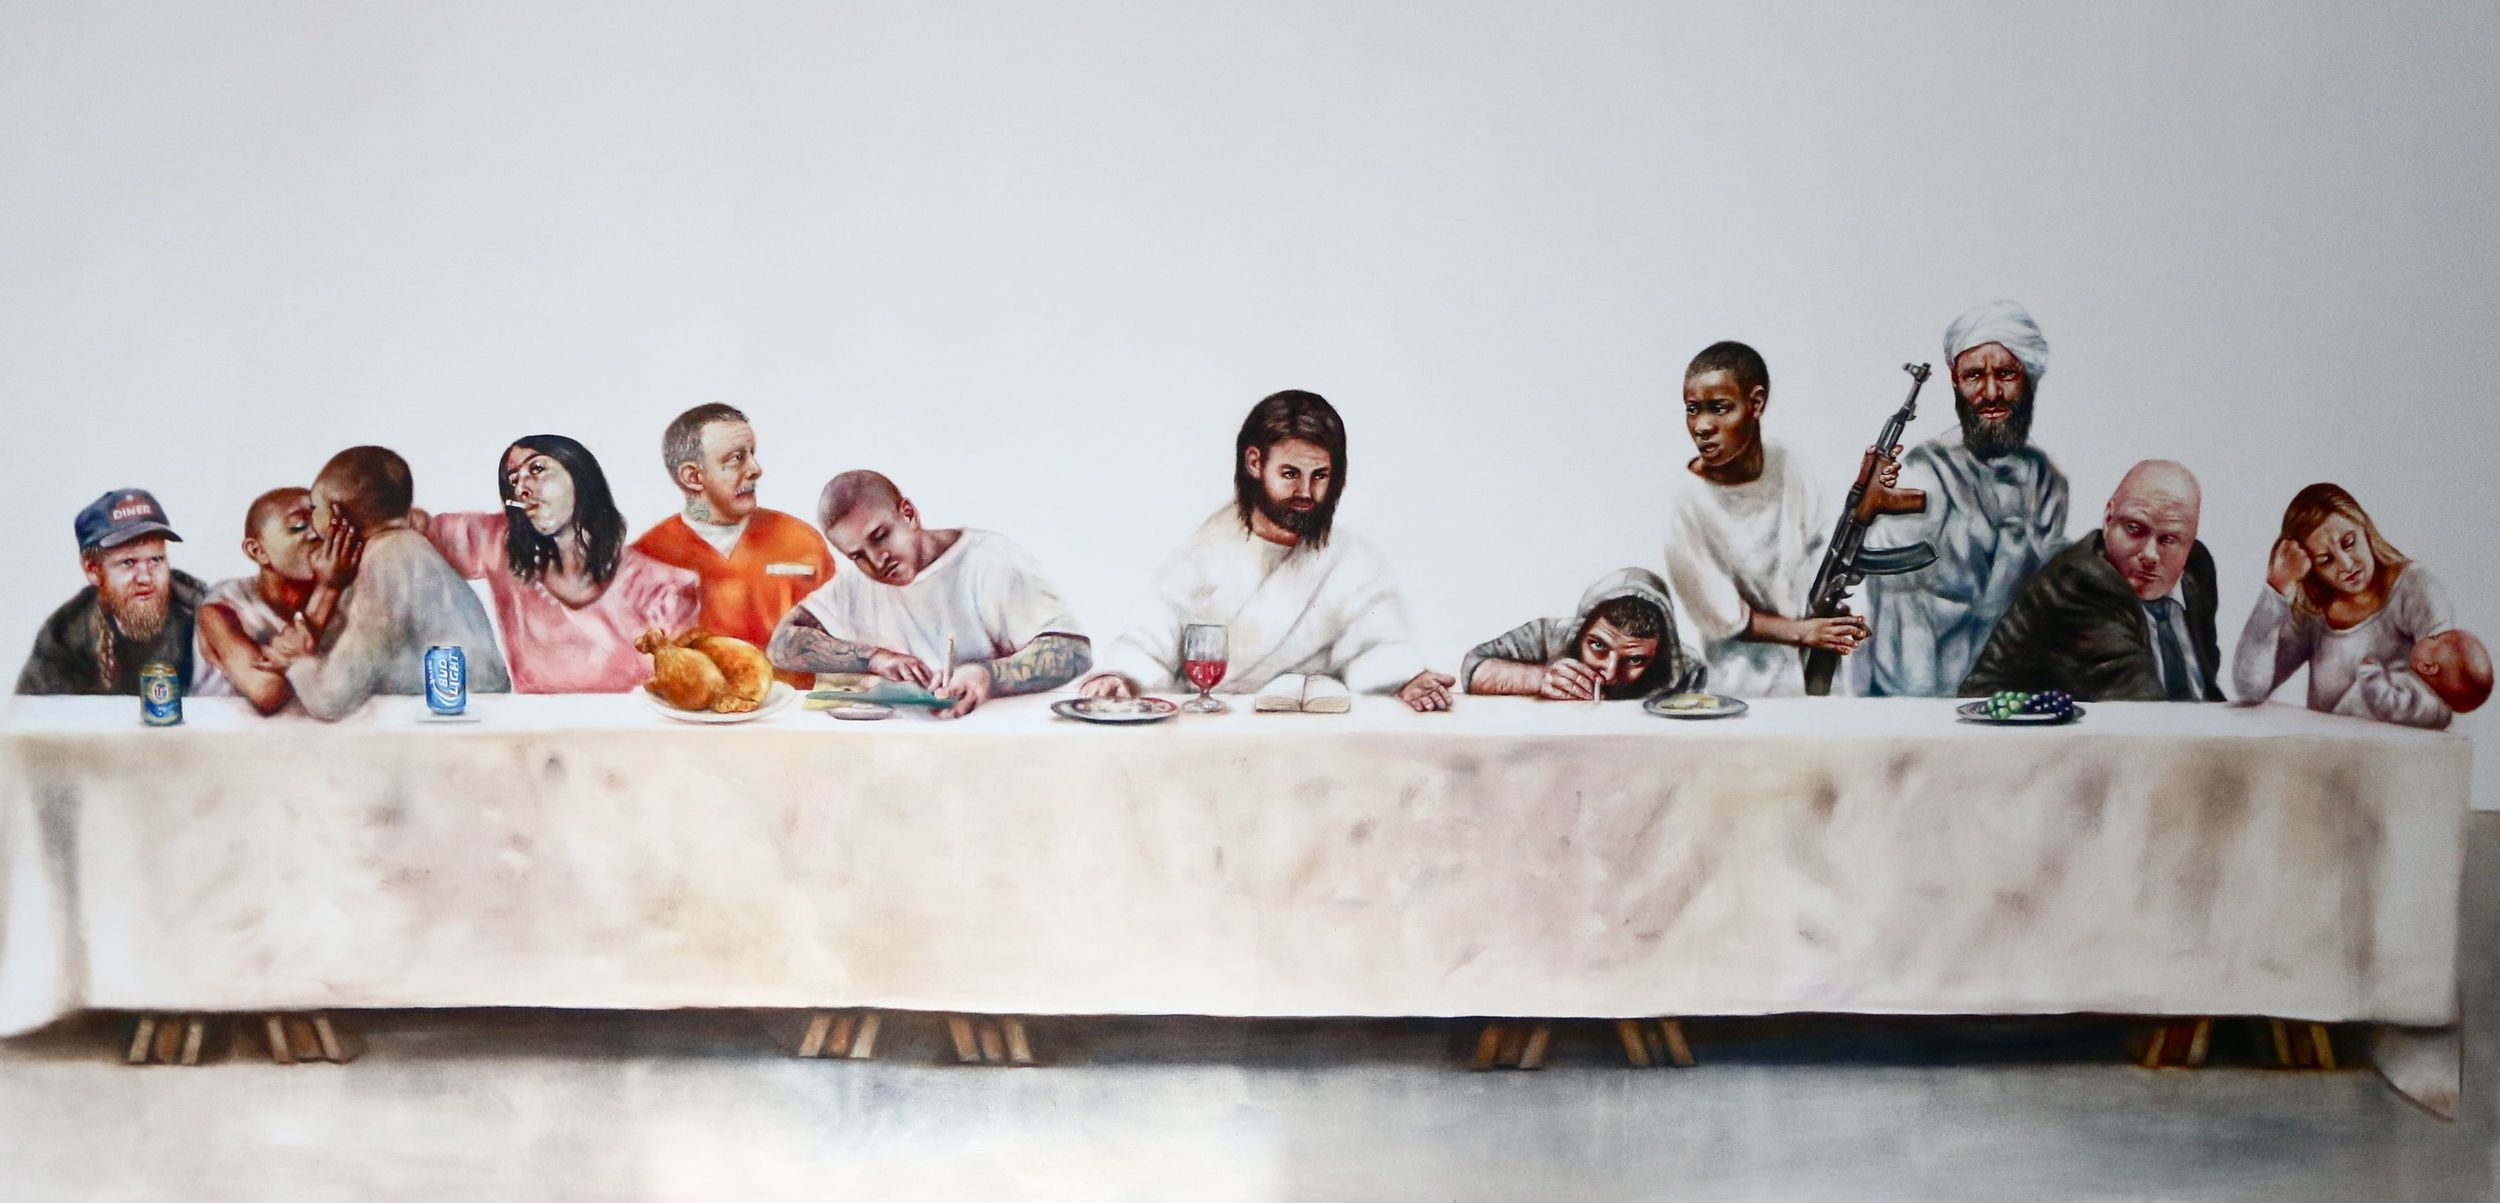 Last Supper Giclée Print - from $144.00